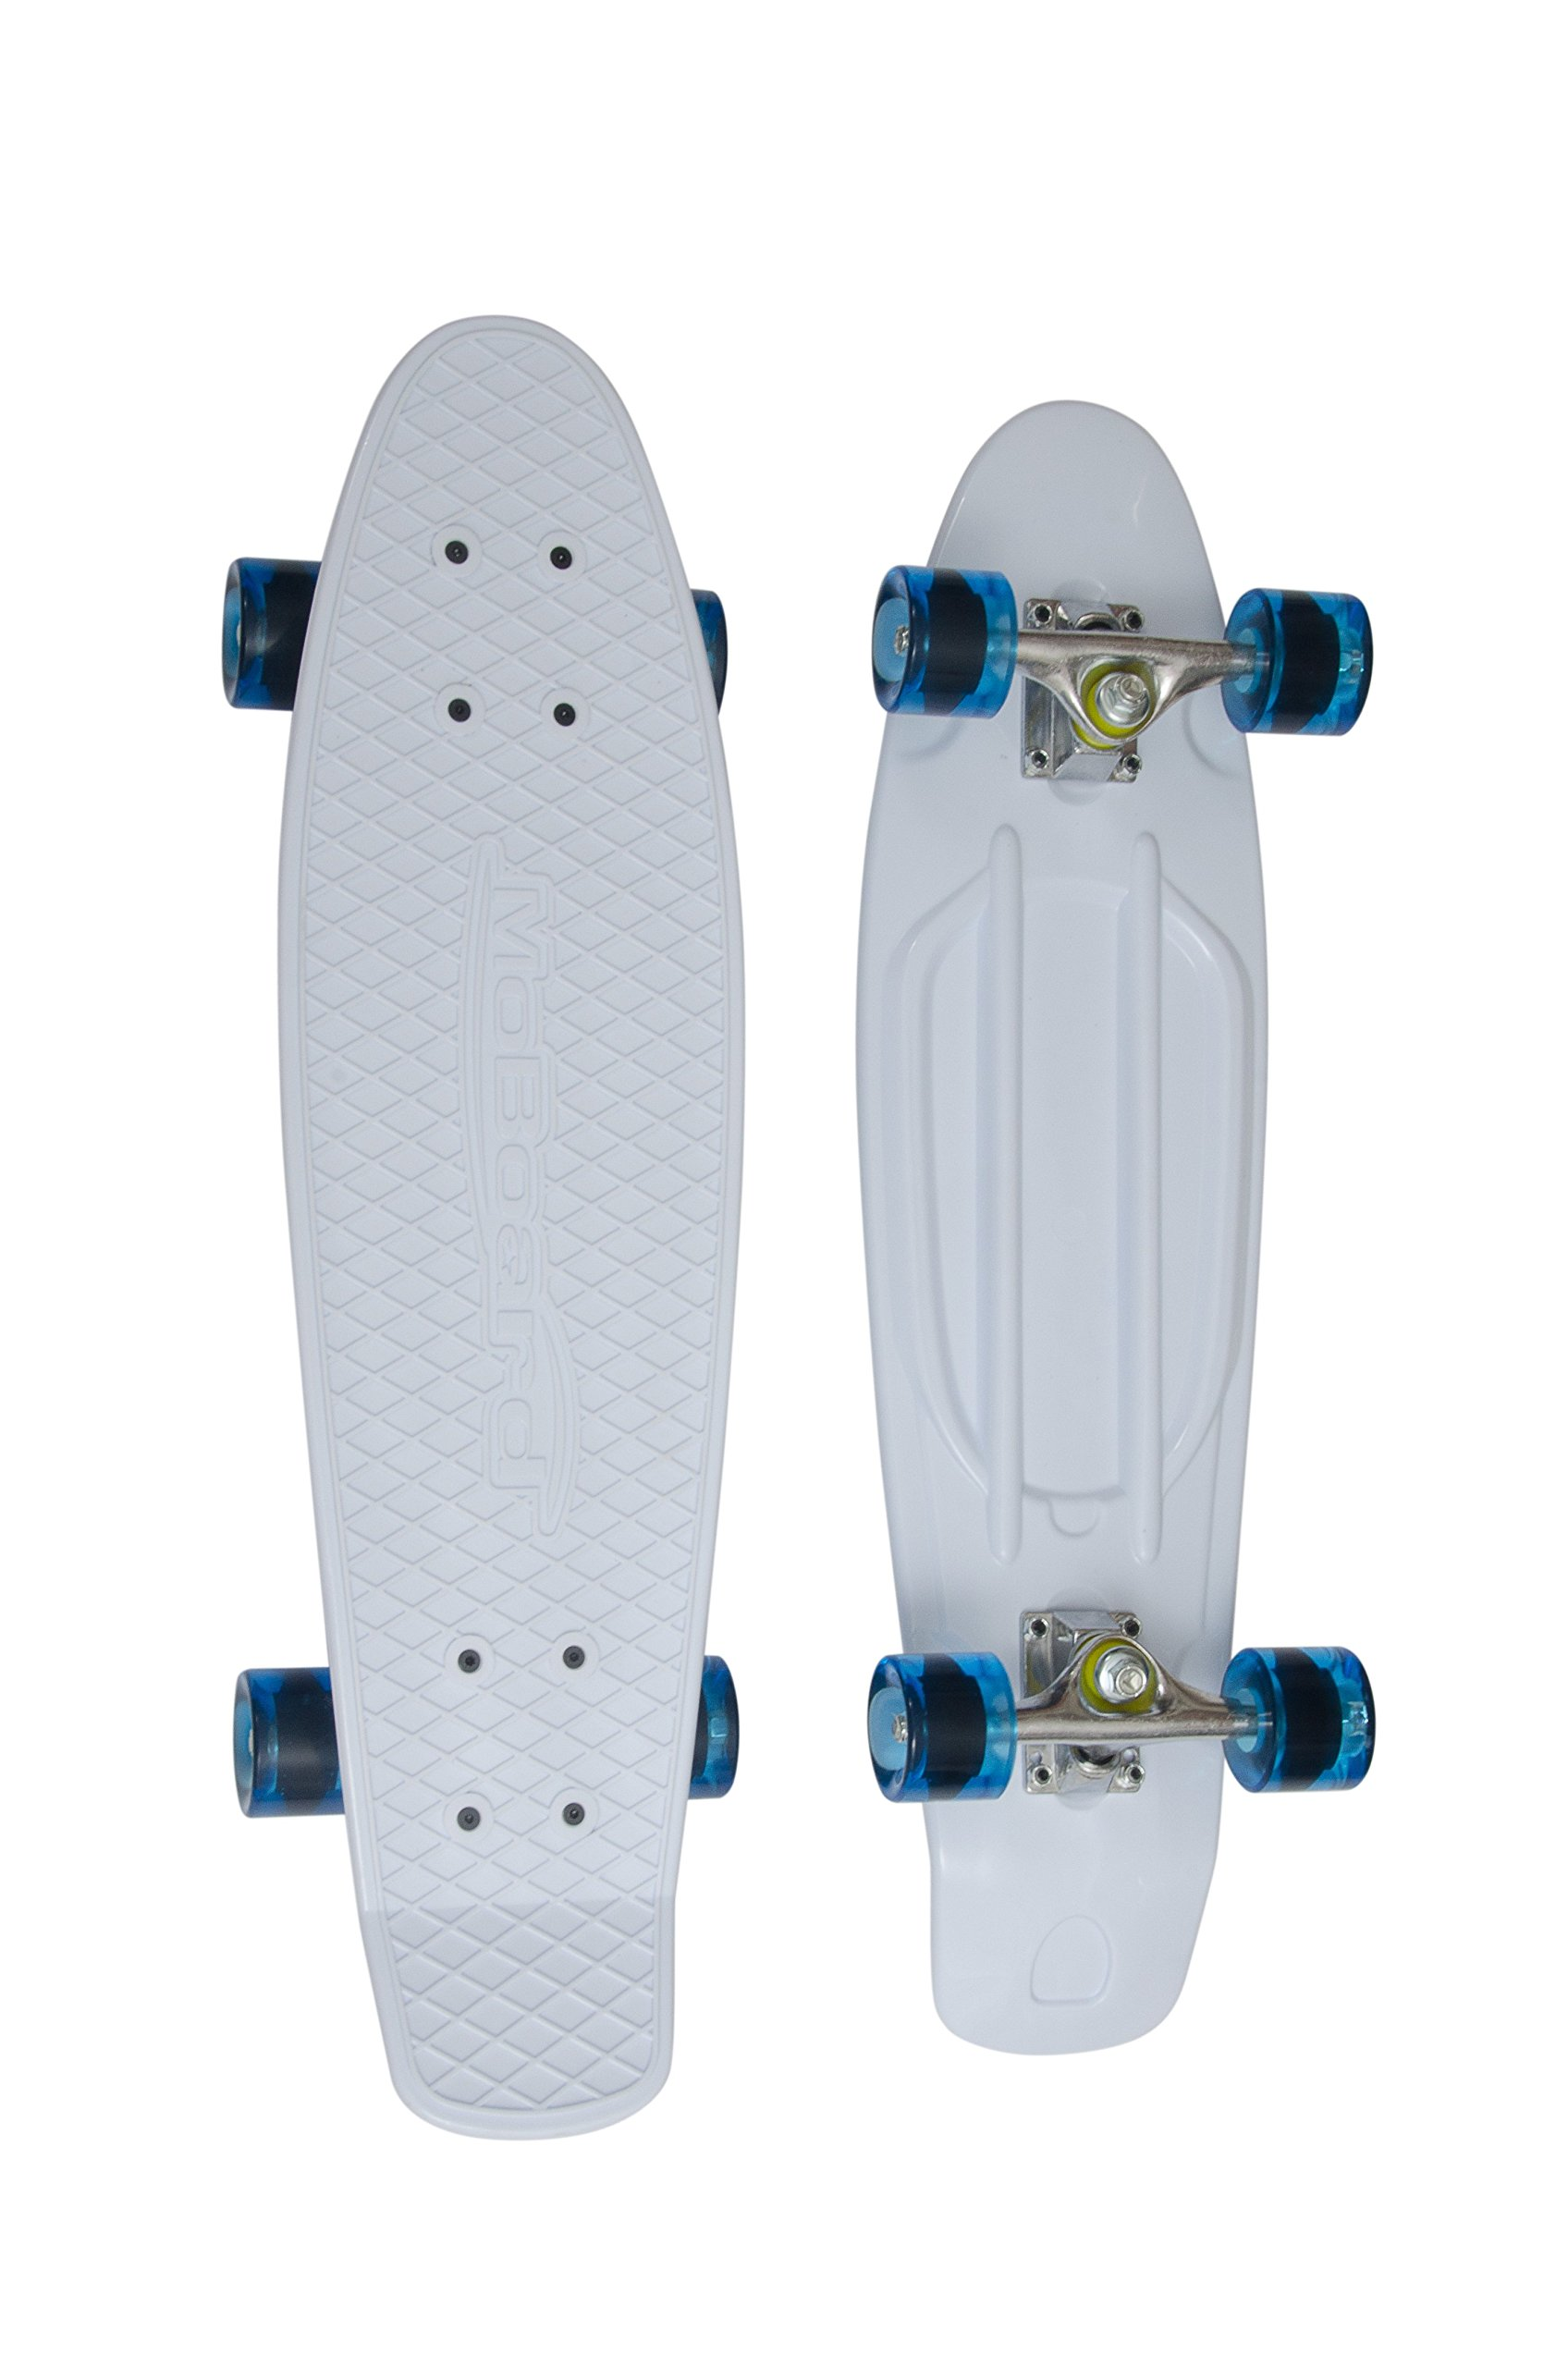 MoBoard Classic 27'' Skateboard | Pro and Beginner | 27 inch Vintage Style with Interchangeable Wheels, Enhanced Bearings | Portable, Lightweight | Durable Rails, Metal Truck. (White - Clear Blue) by MoBoard